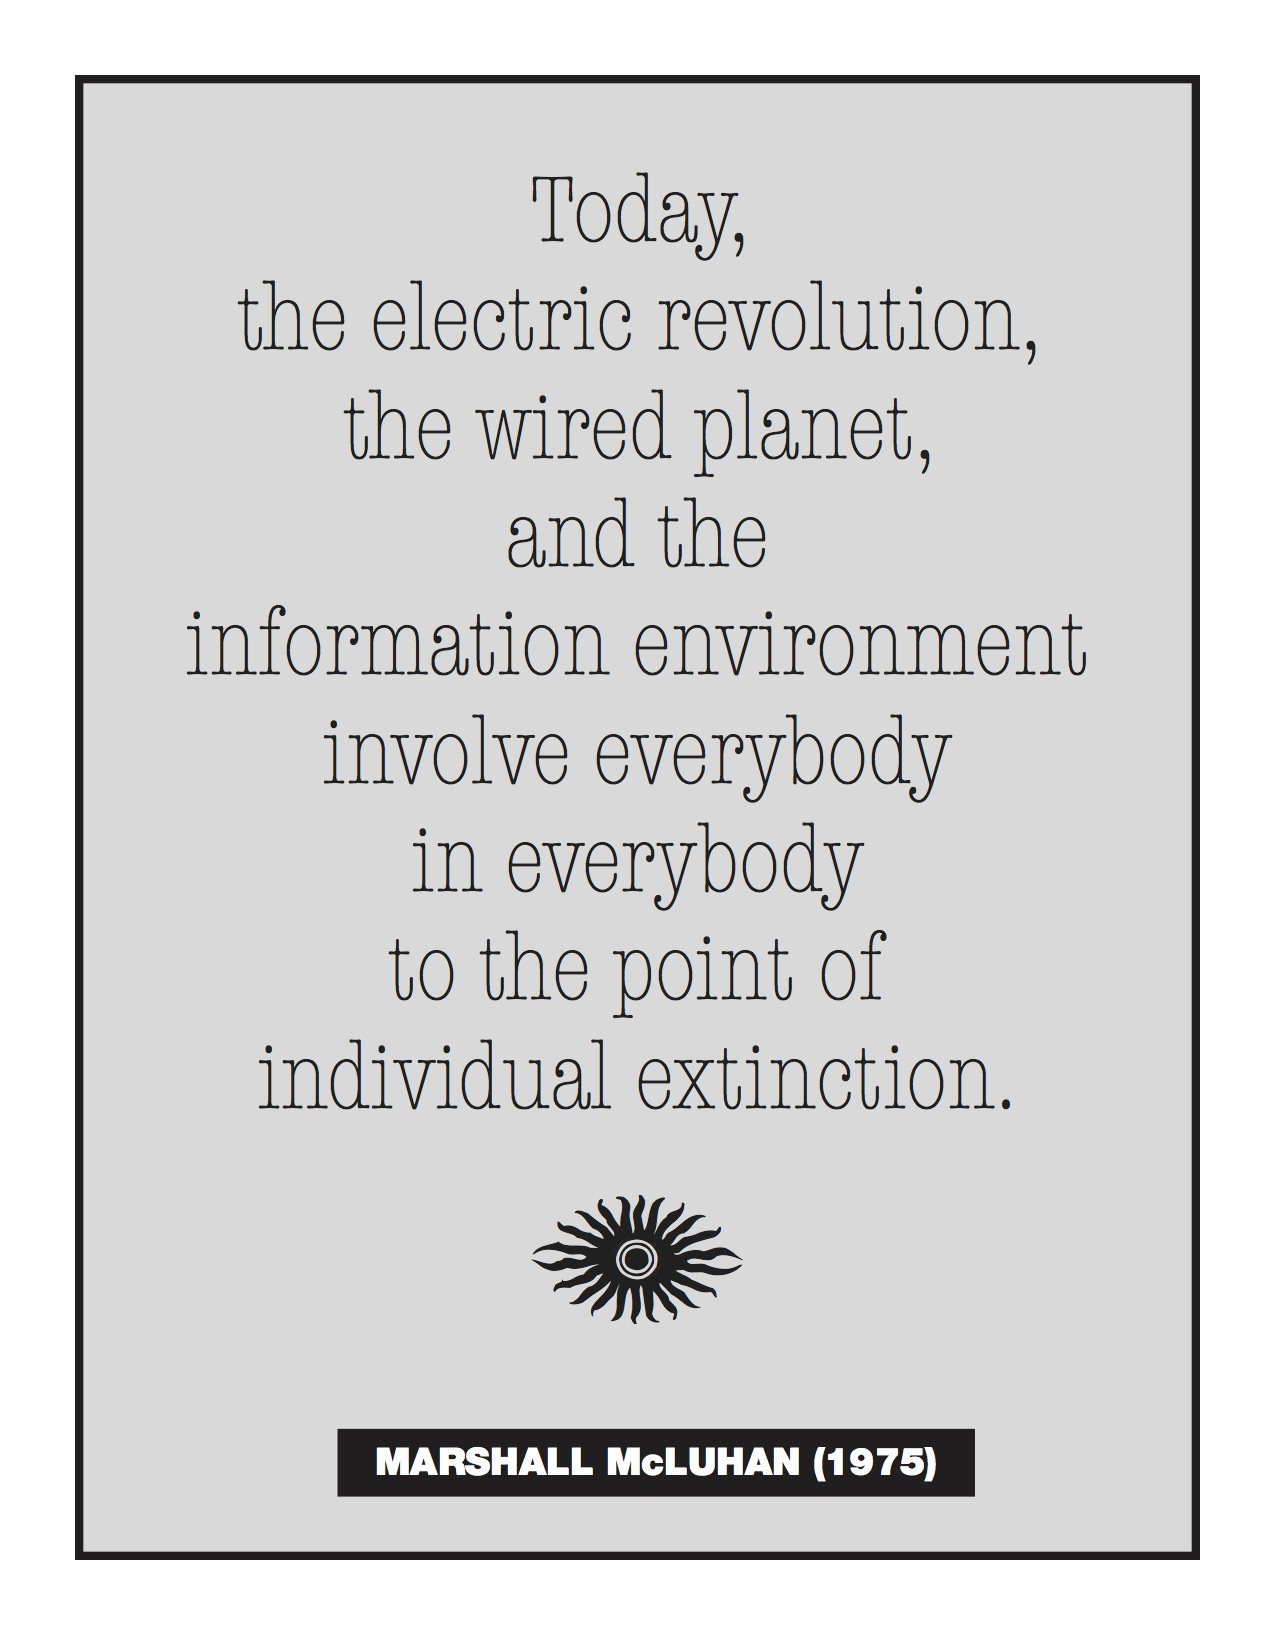 McLuhan Electric Revolution